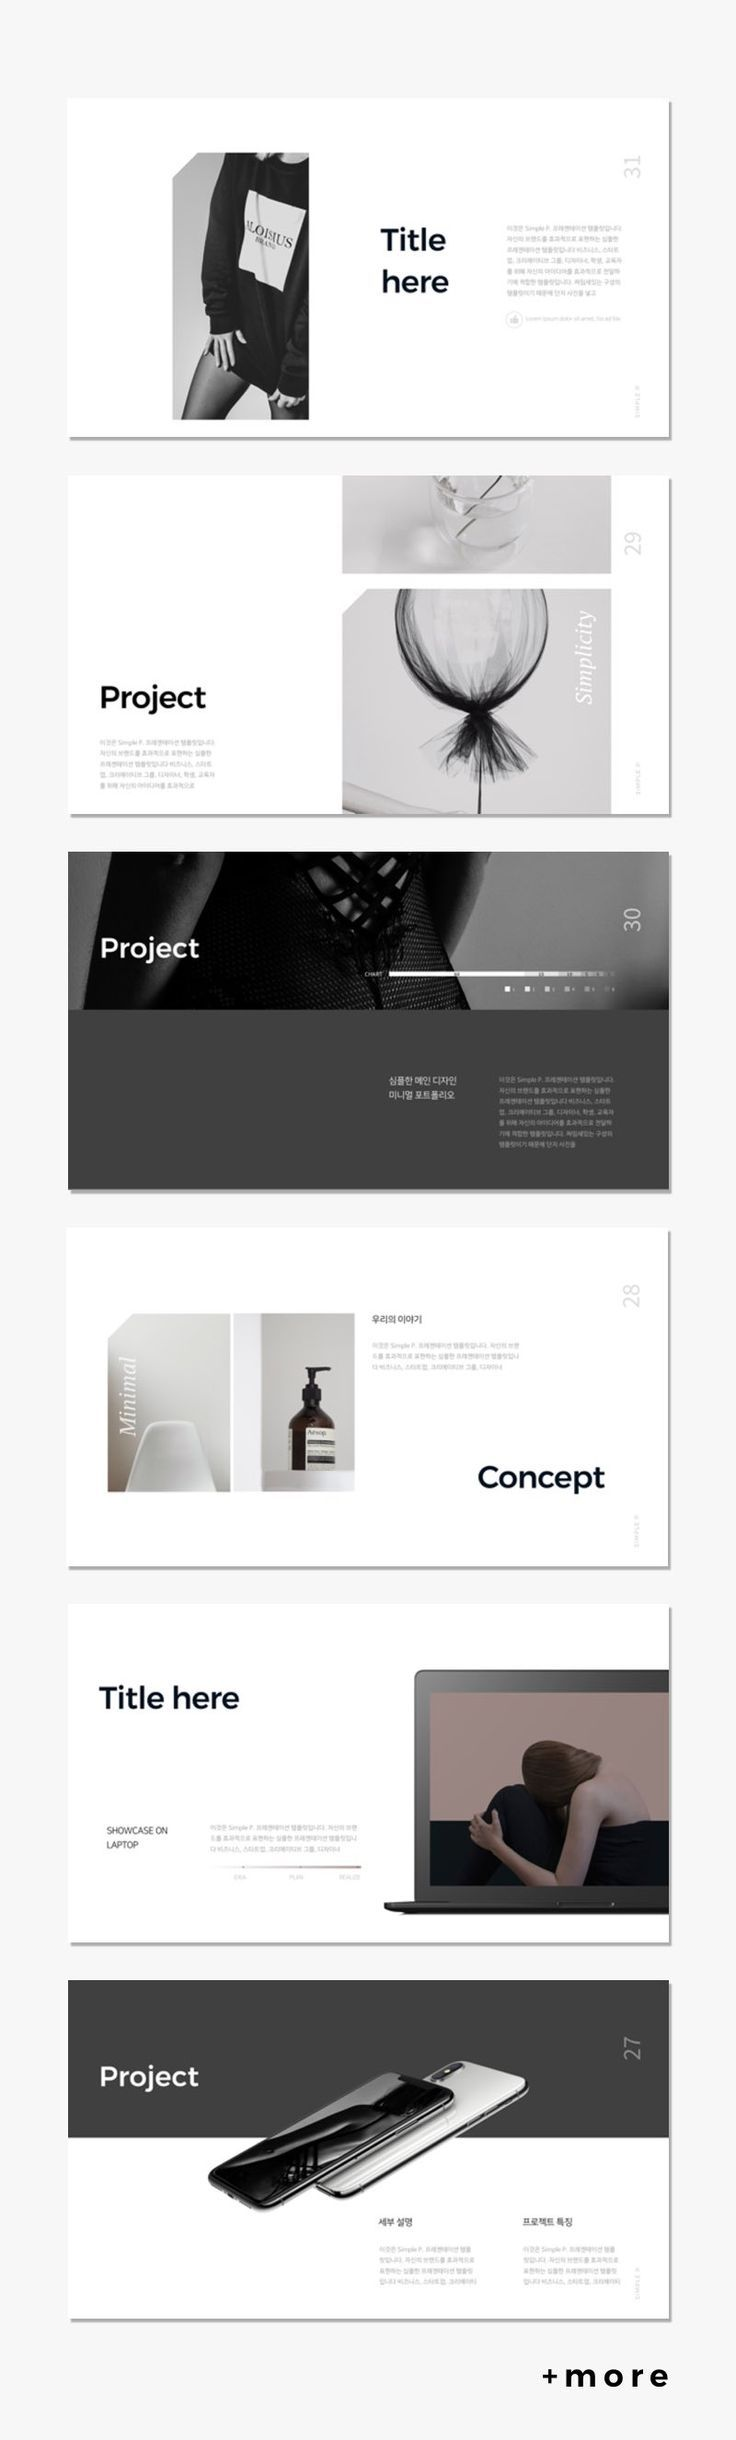 Awesome Simple & Minimal Presentation Template #keynote #presentation #portfolio...